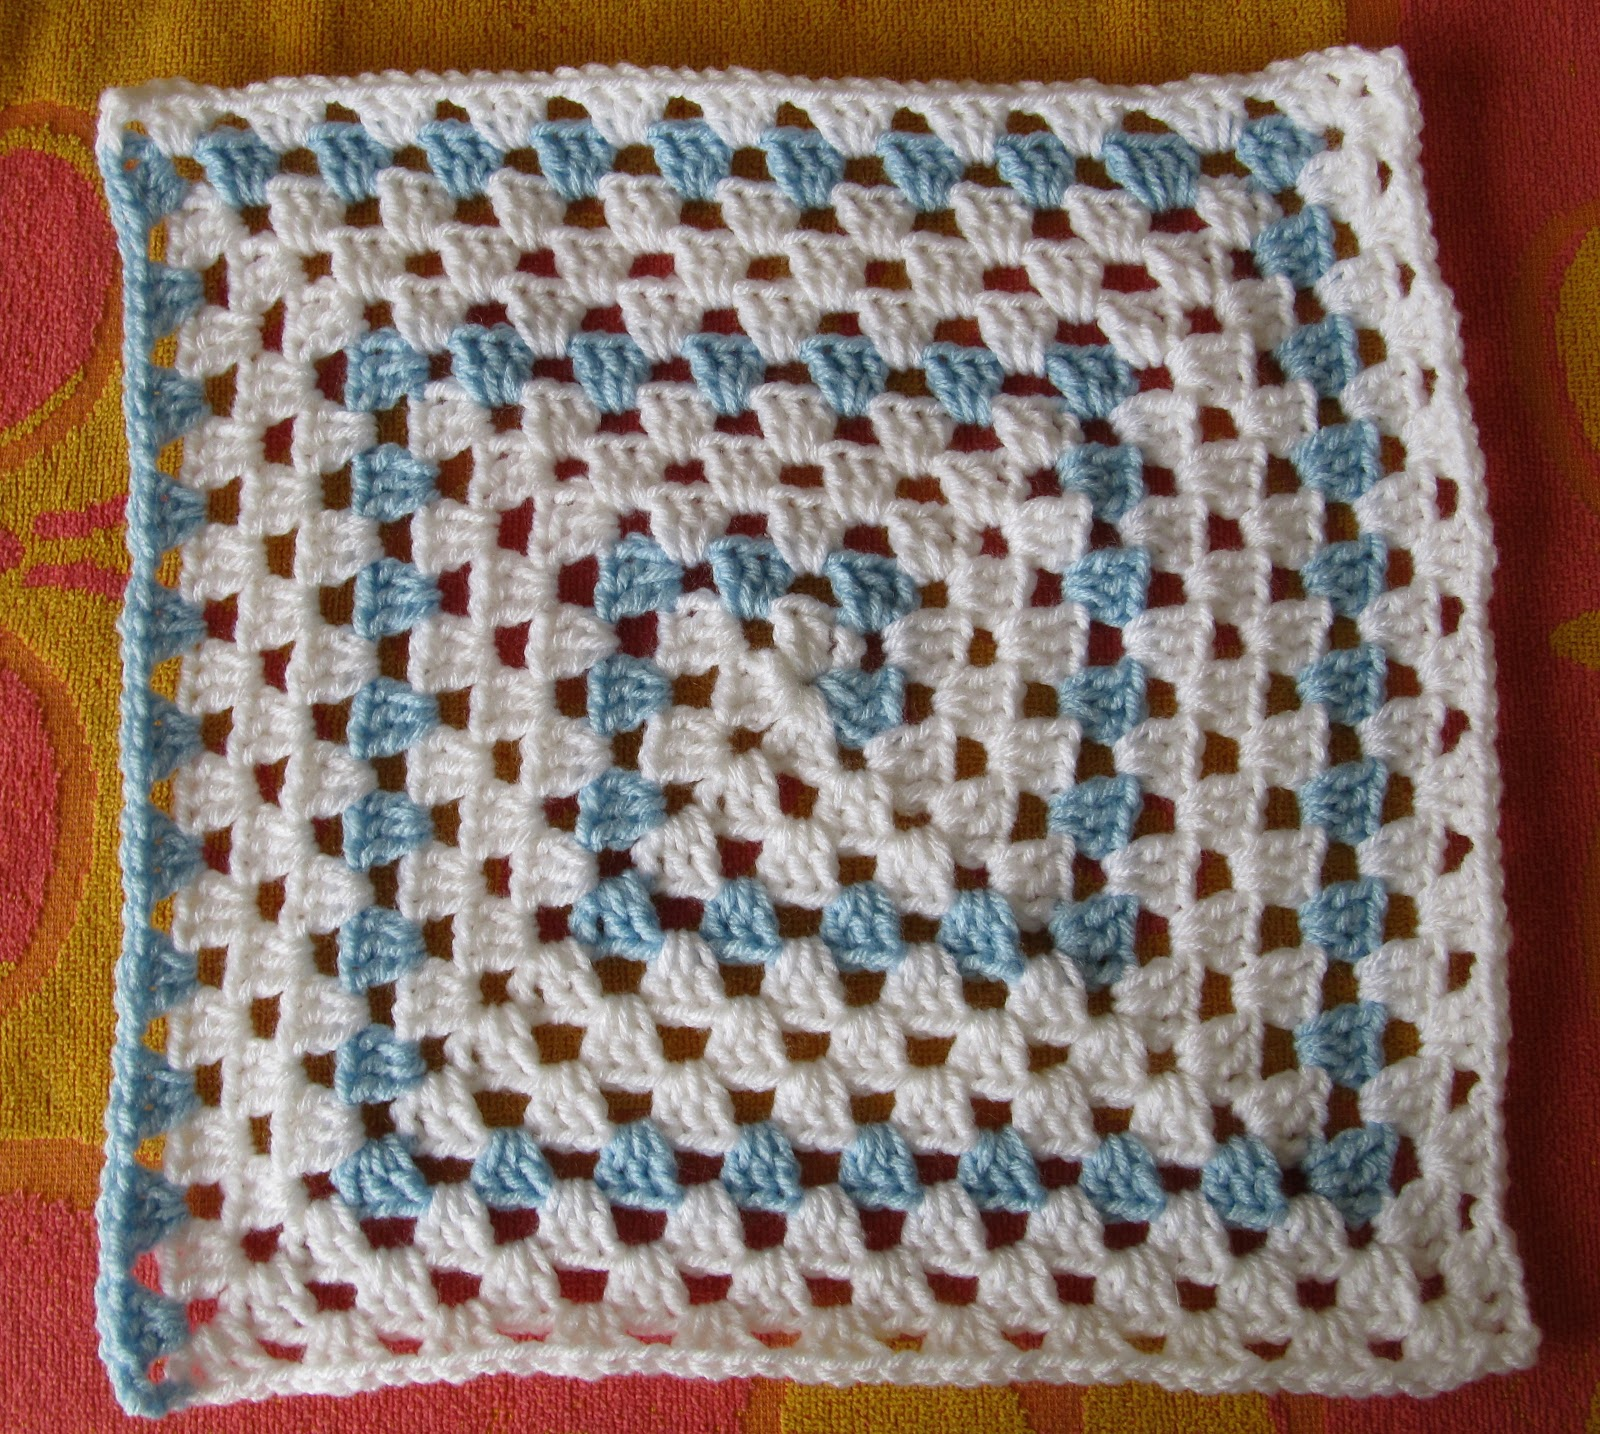 SmoothFox Crochet and Knit: SmoothFoxs Spiral Granny Square or Blanket -...